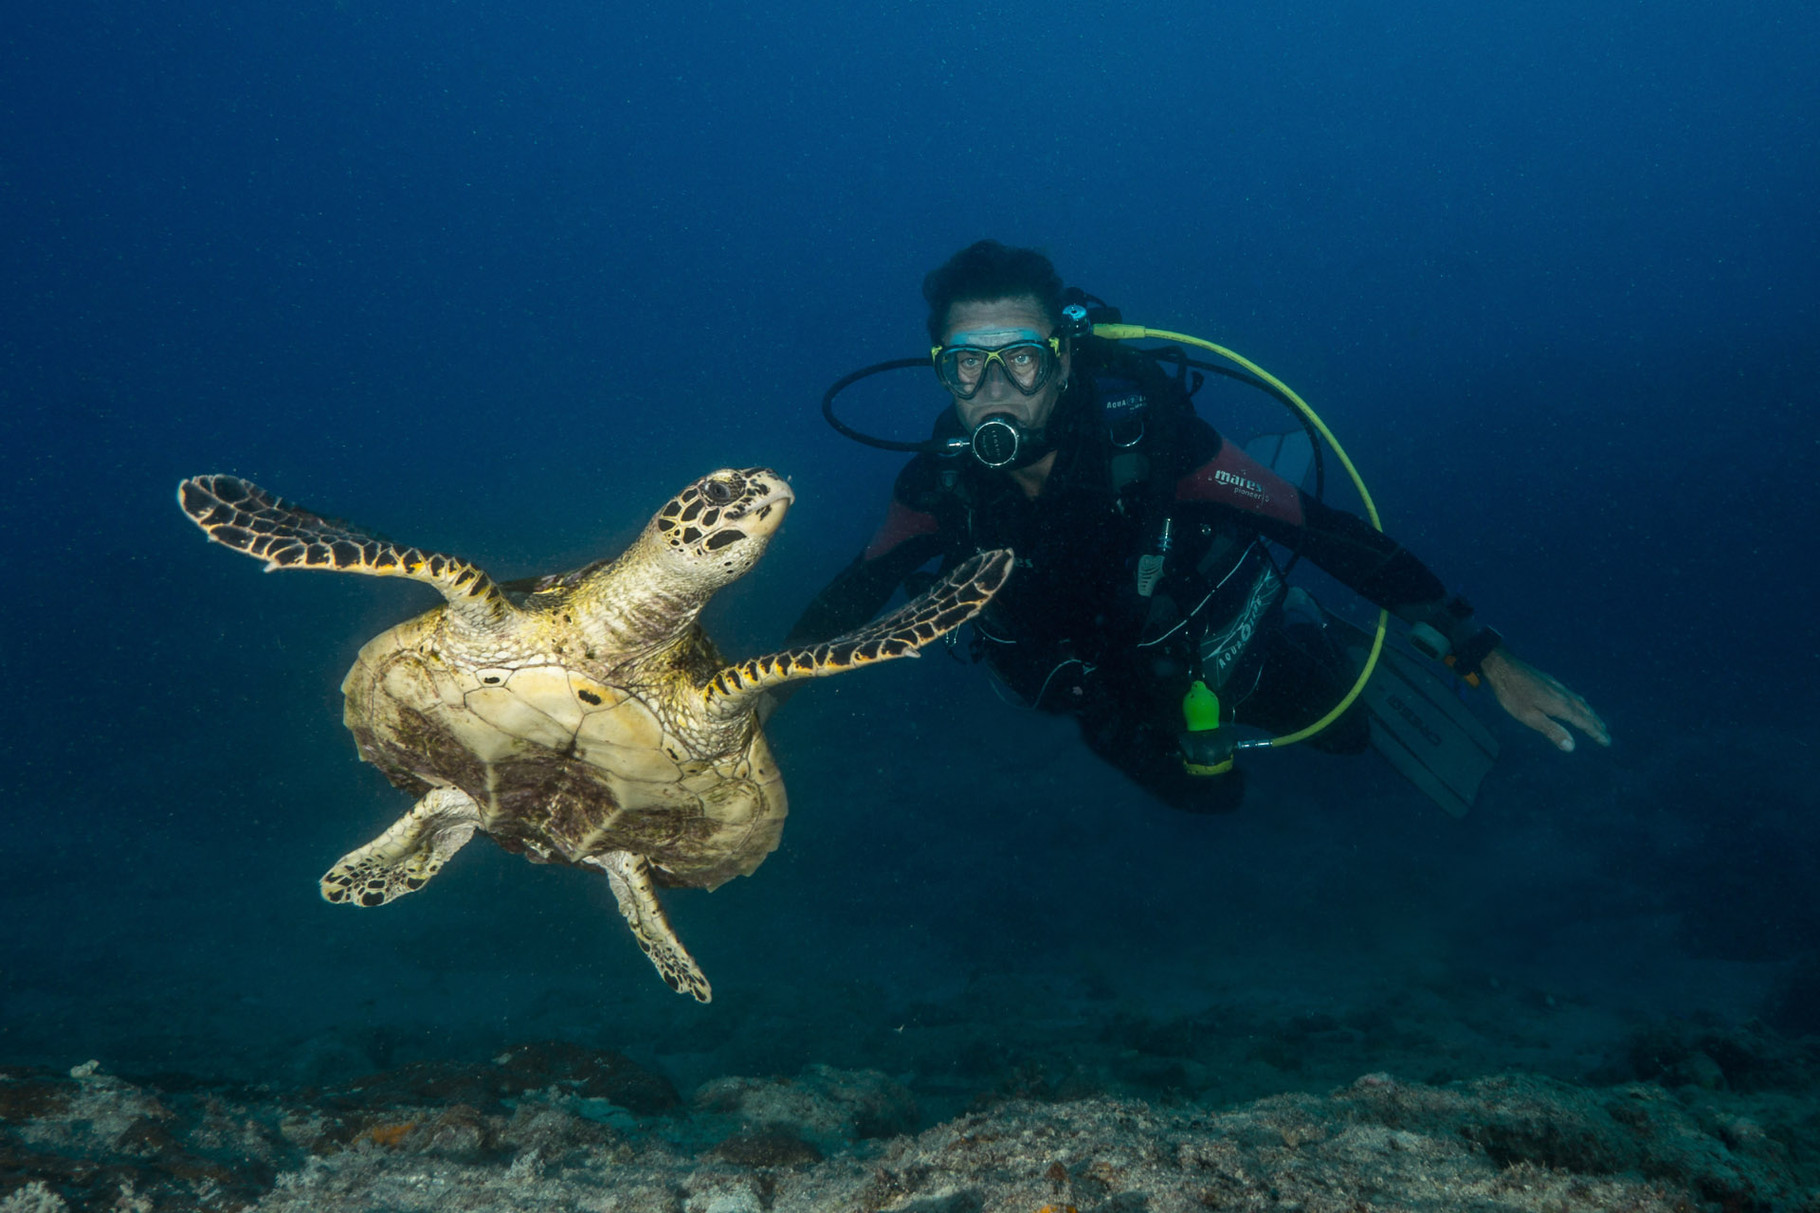 Turtle and diver, Hienghene